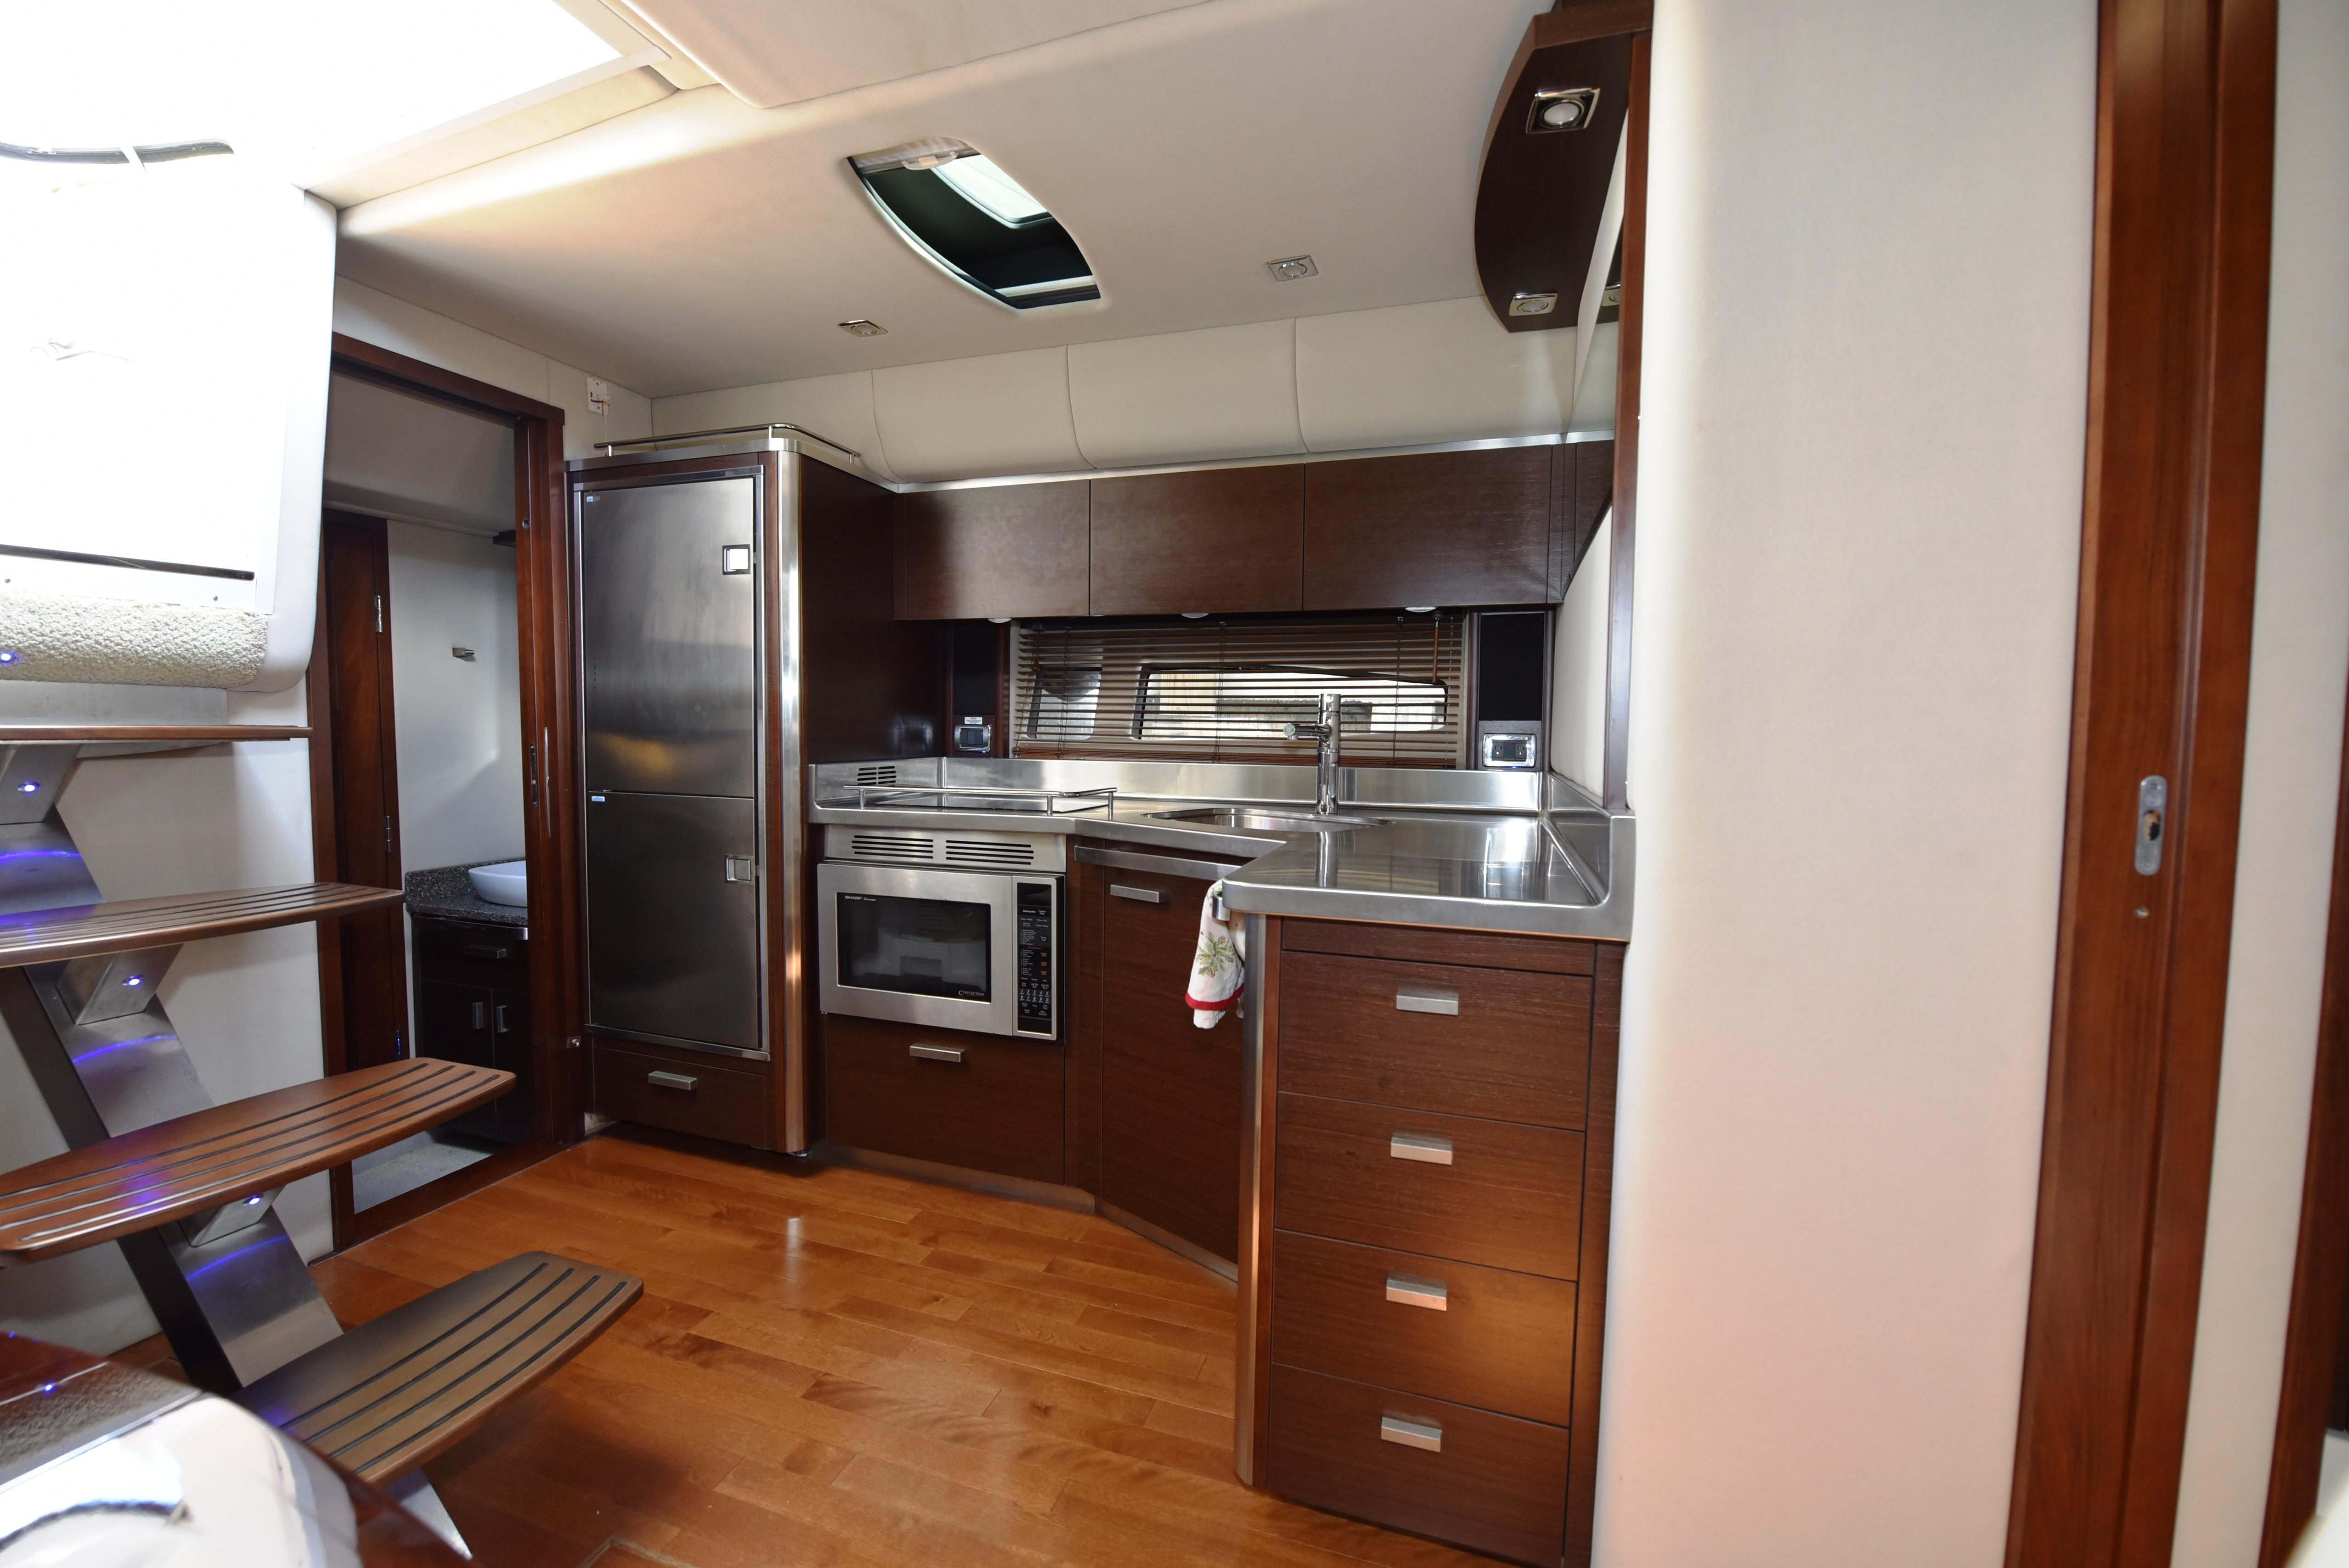 2010 Chaparral 400 Premier - Galley